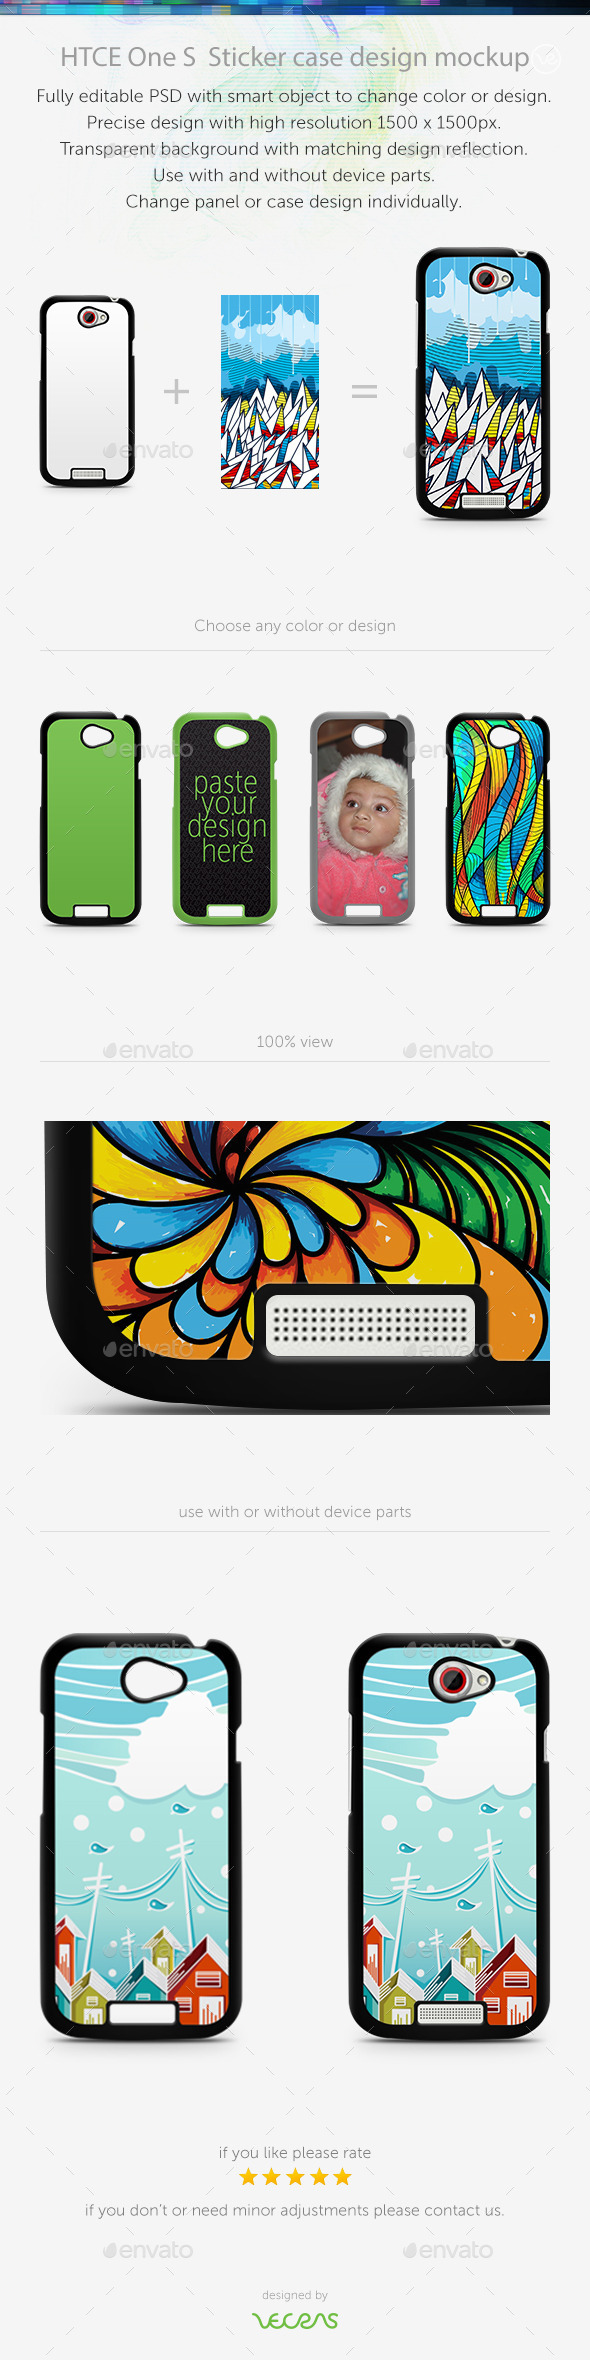 HTCE One S Sticker Case Design Mockup